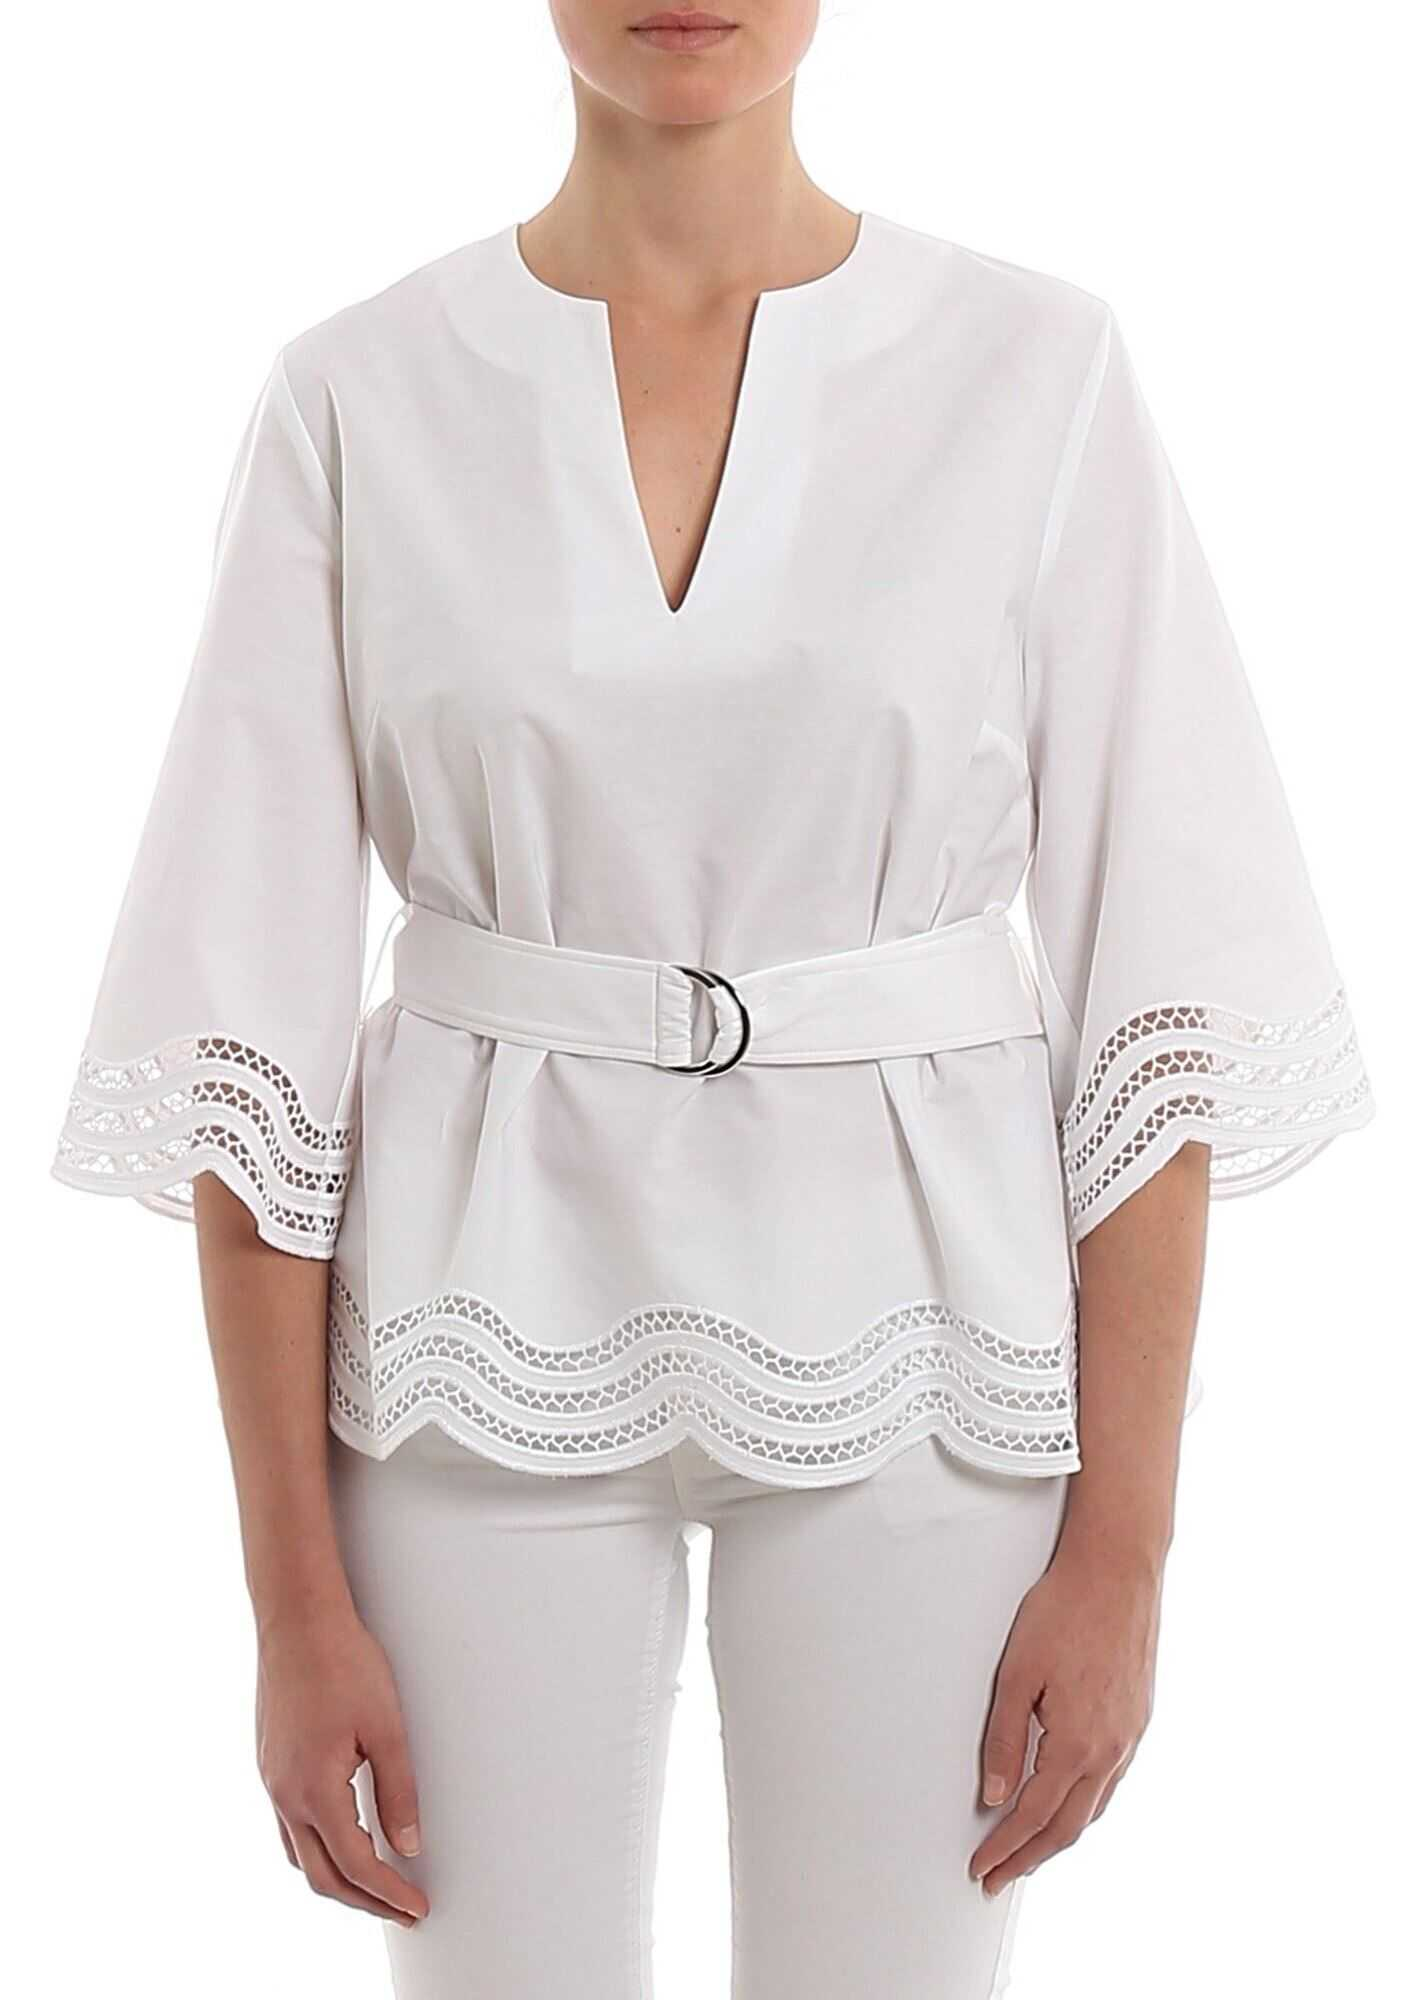 P.A.R.O.S.H. Cojour Belted Blouse White